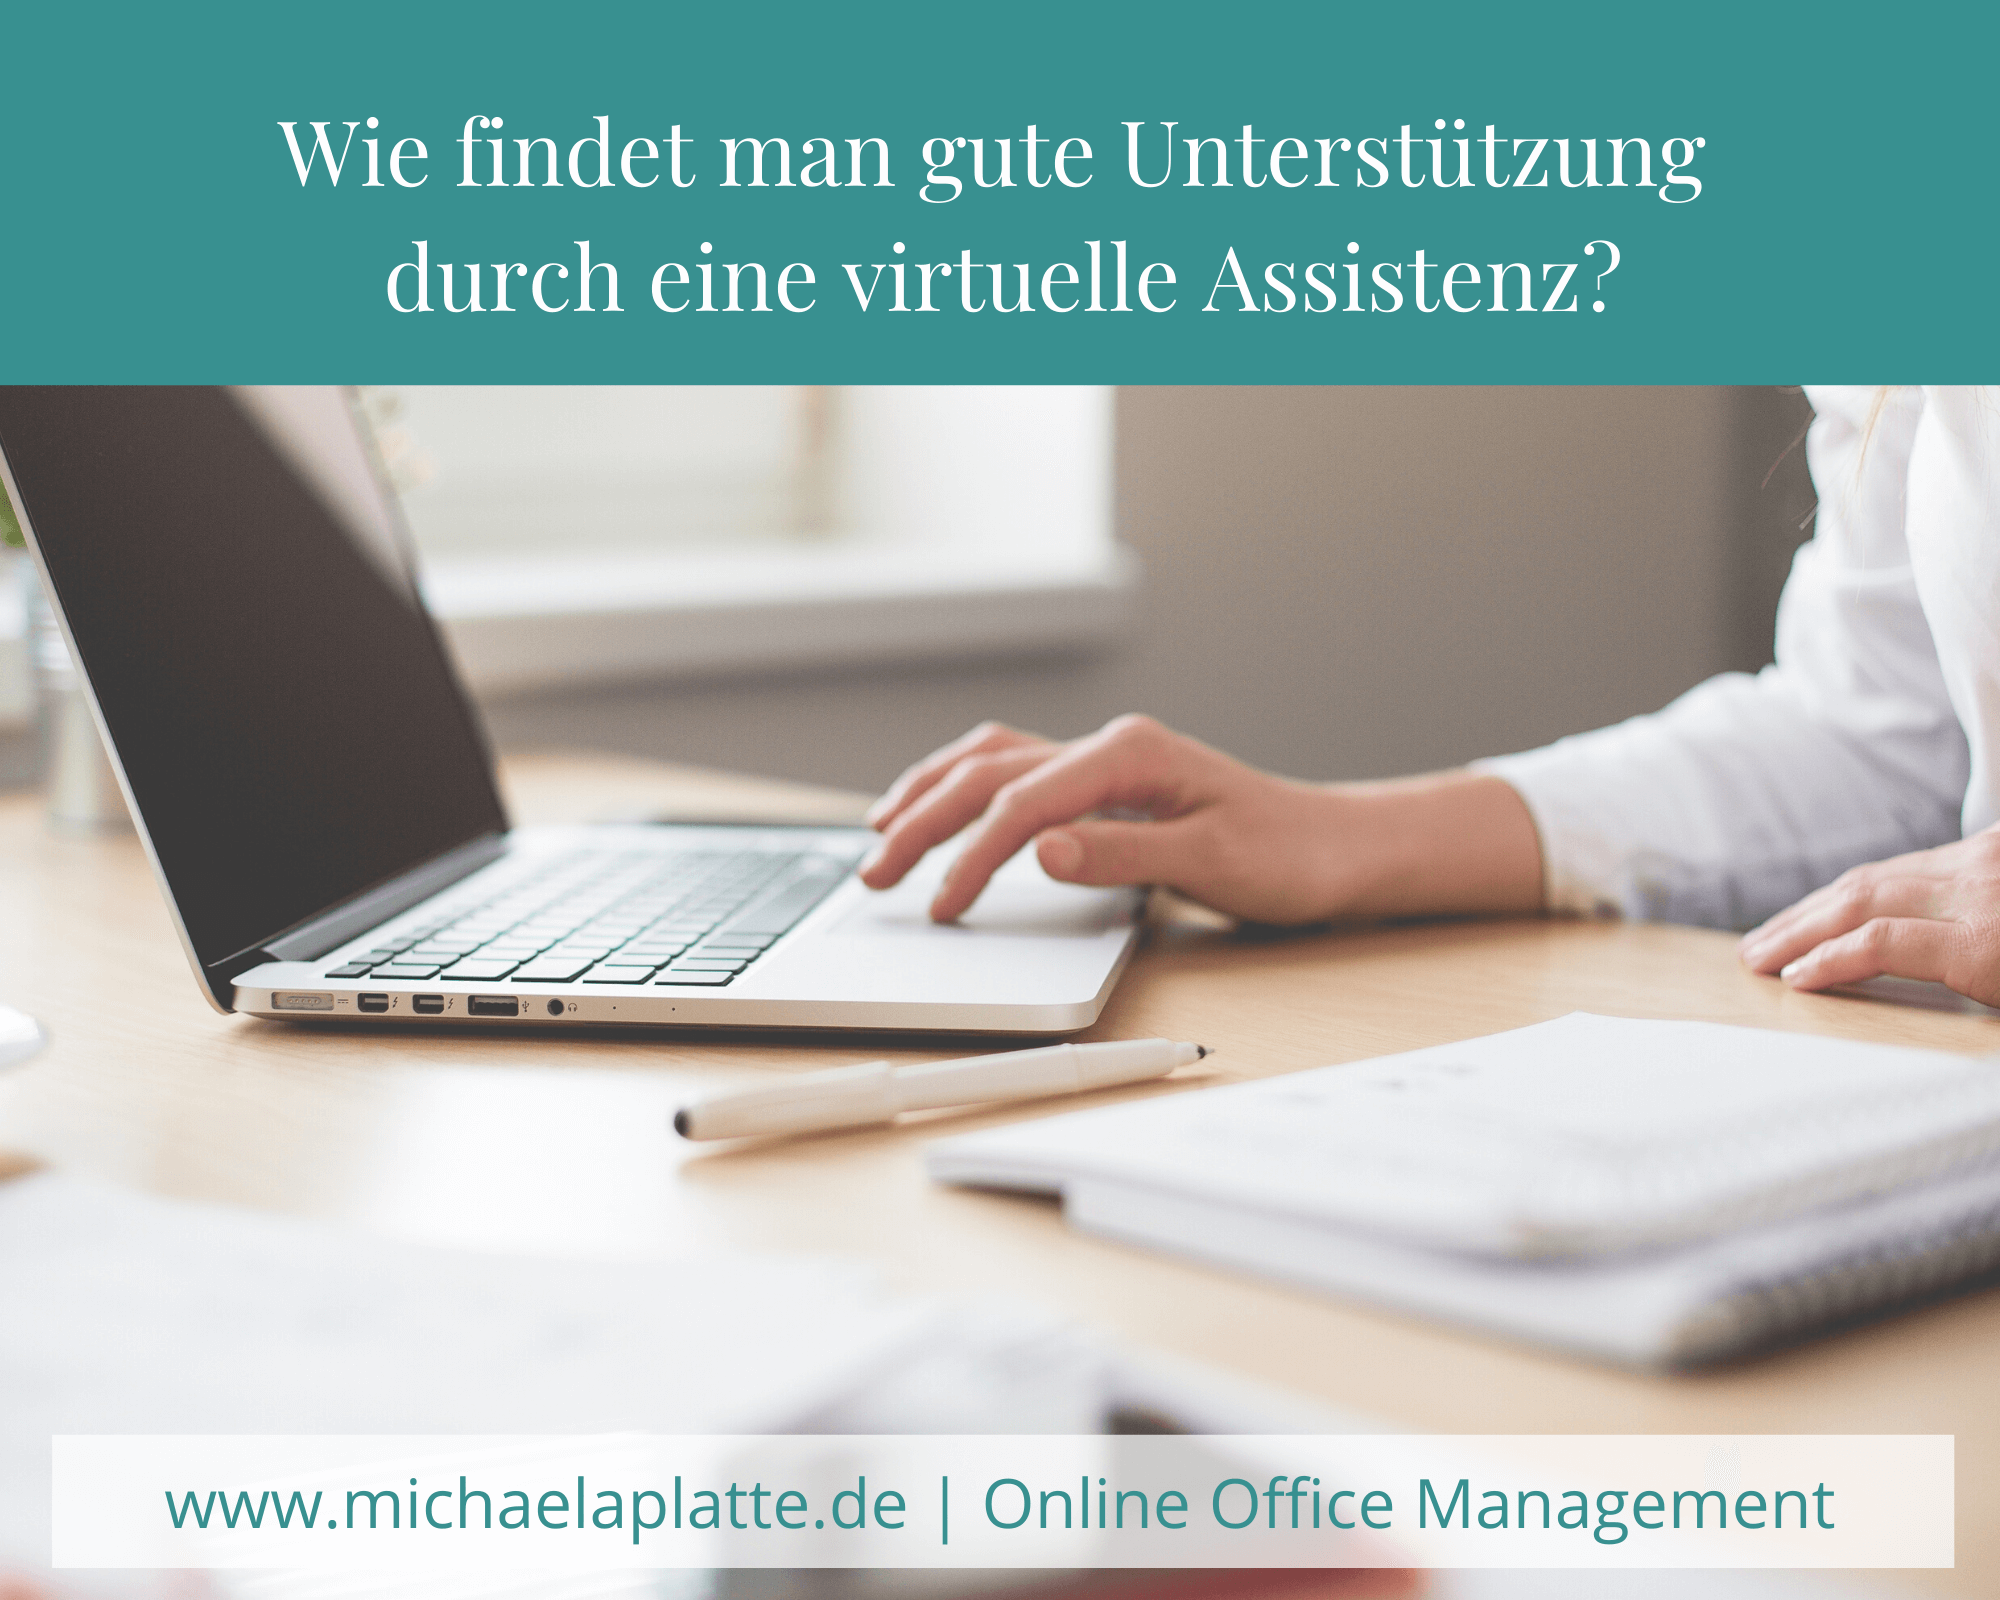 virtuelle Assistenz, Backoffice, Produktivität